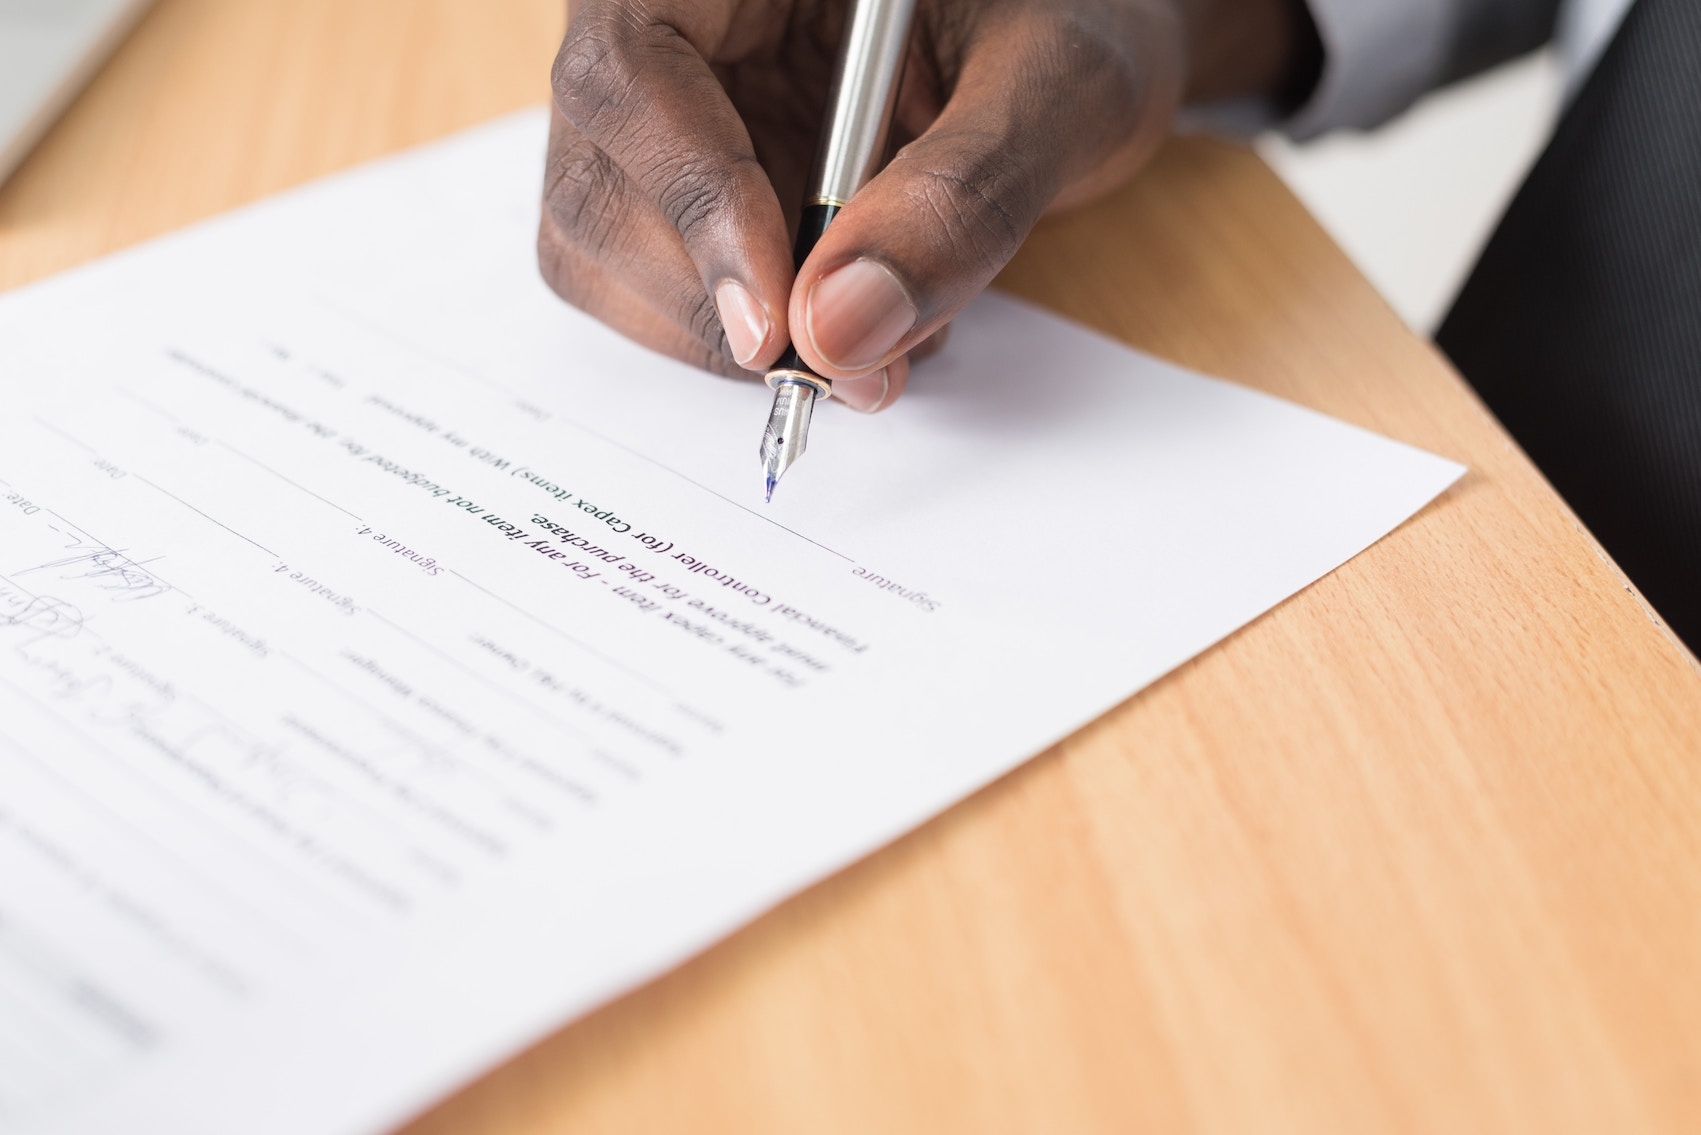 How to Write a Contract: All You Need to Know About Contracts